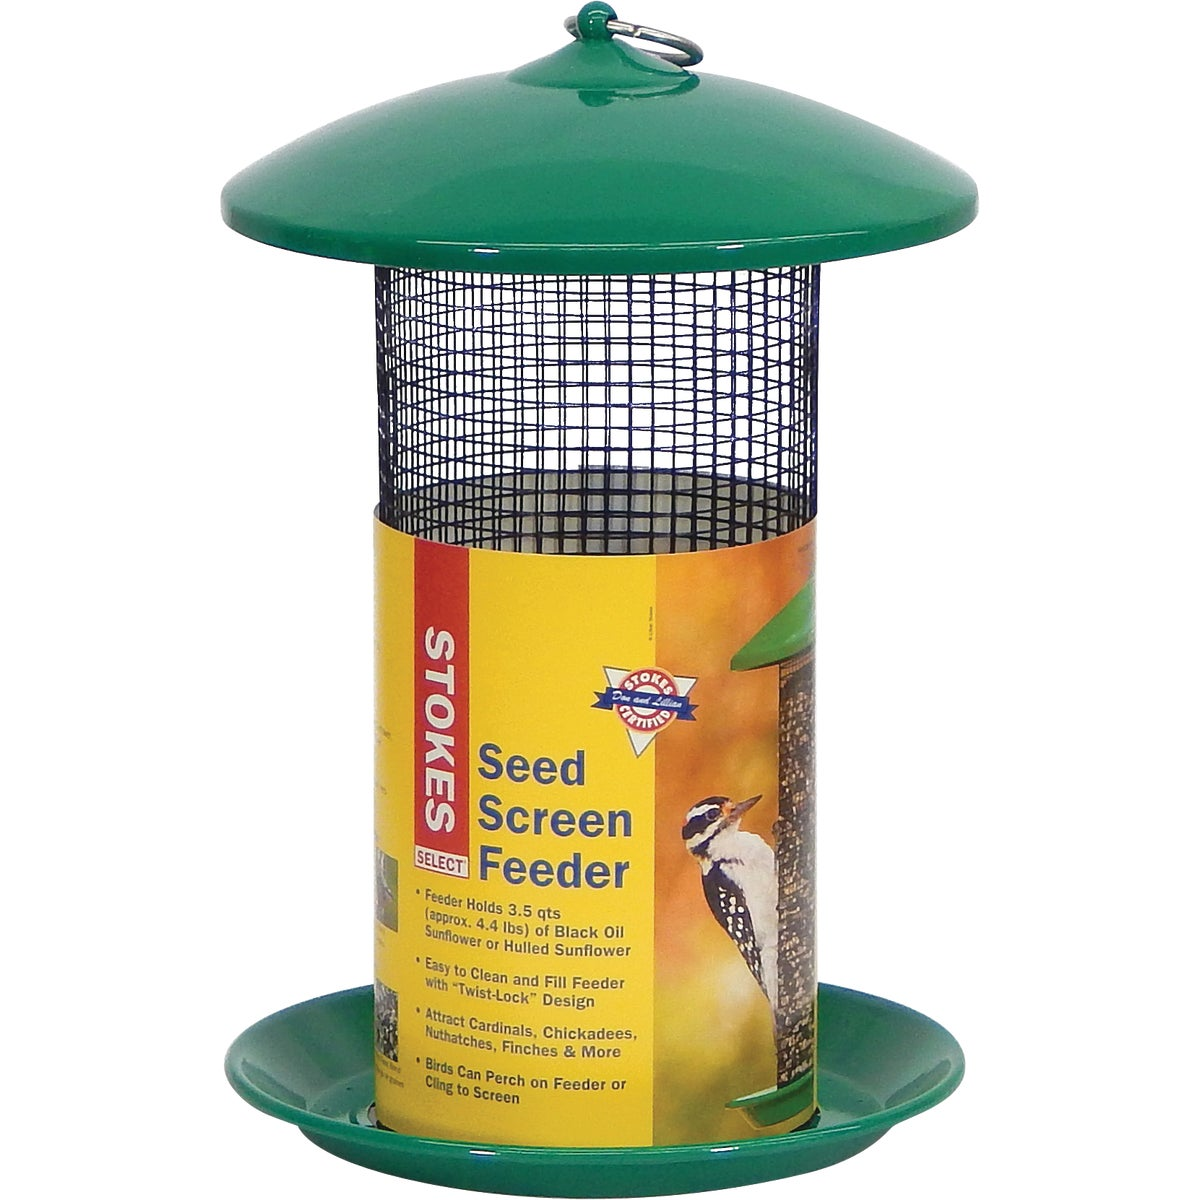 SUNFLOWER SCREEN FEEDER - 38175 by Hiatt Mfg